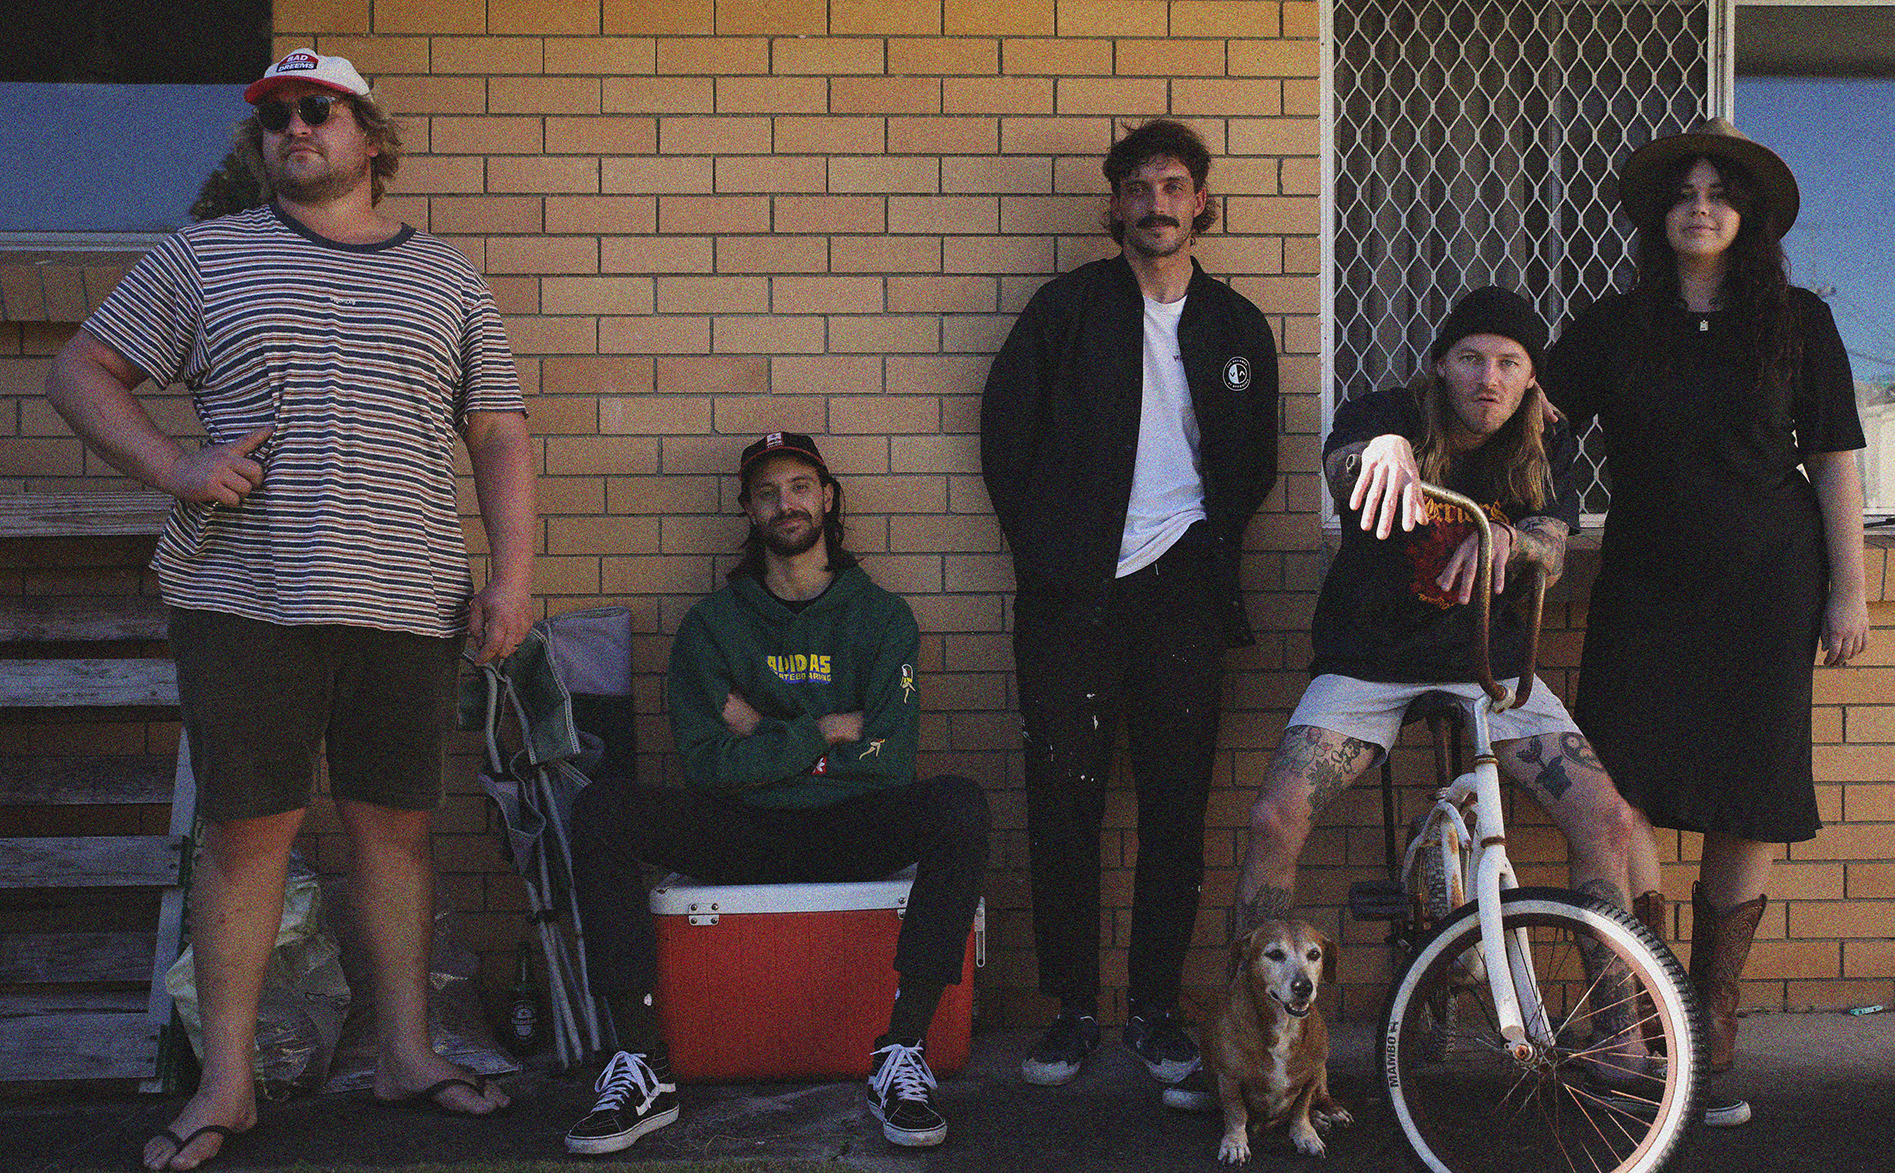 RADOLESCENT deliver another slice of classic punk surf-rock with new single 'Home'.  Sophomore EP 'EXCELLENT PEOPLE' out on Thursday, July 22.